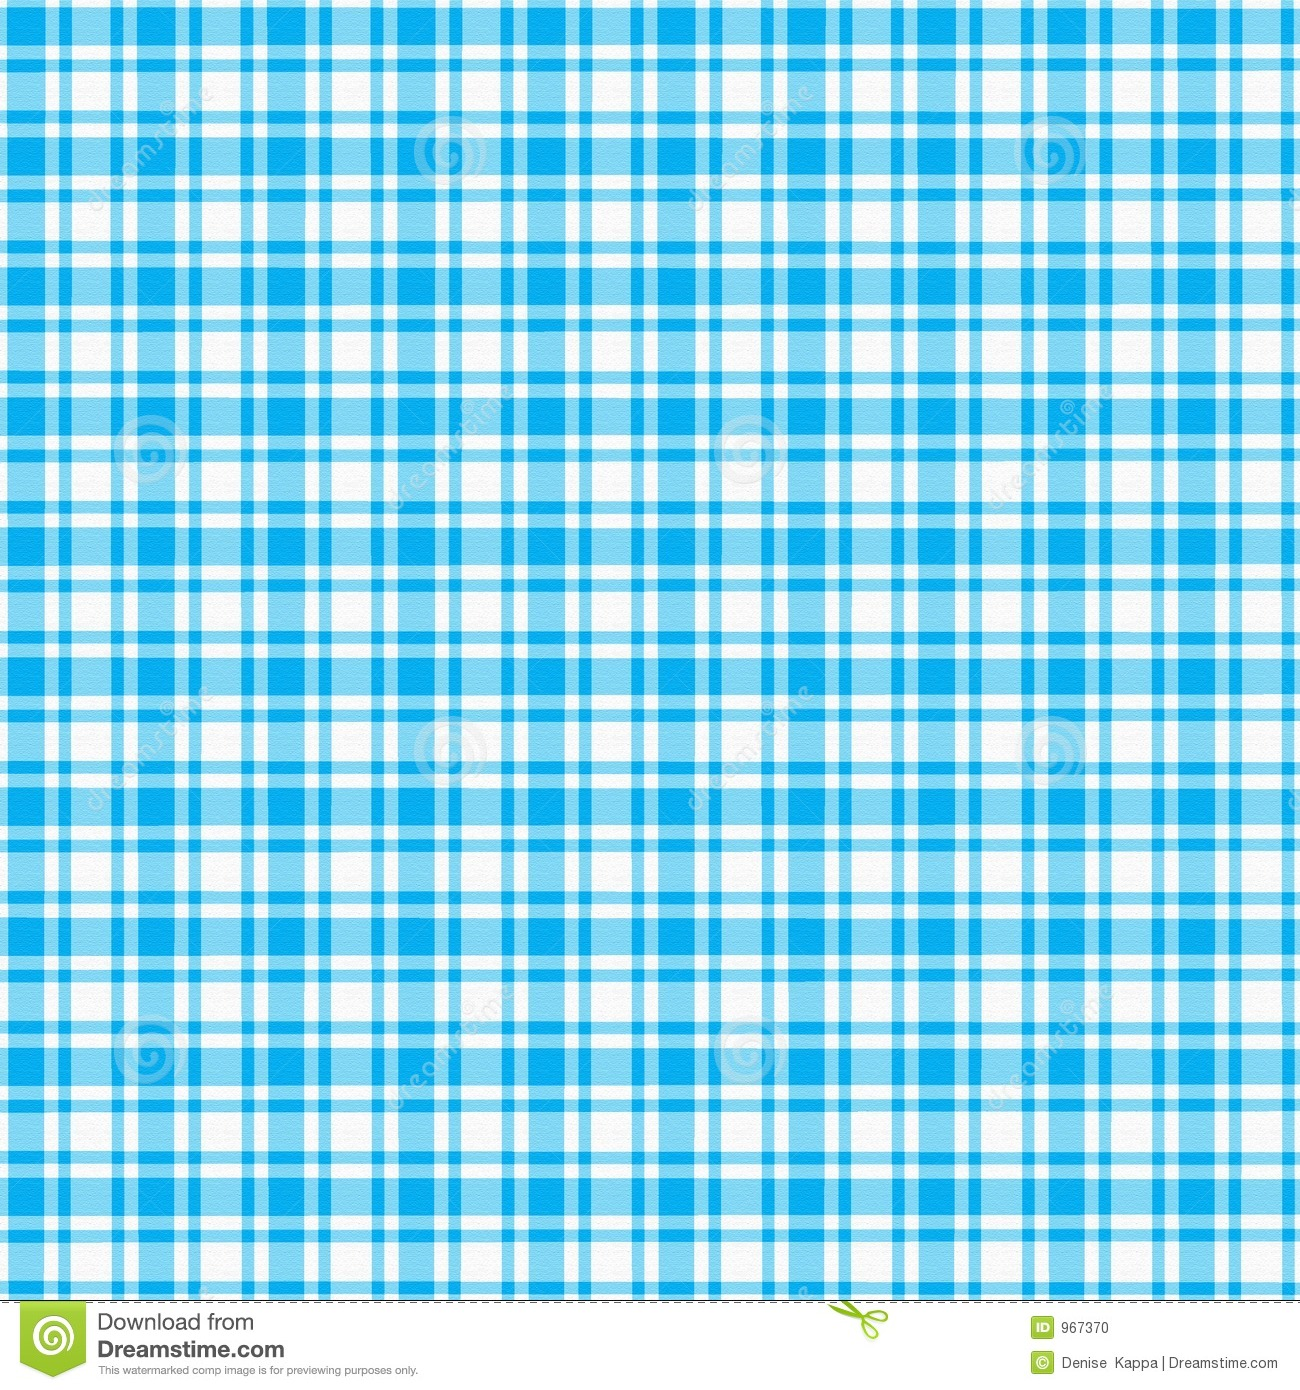 1300x1390 - Blue Plaid 22